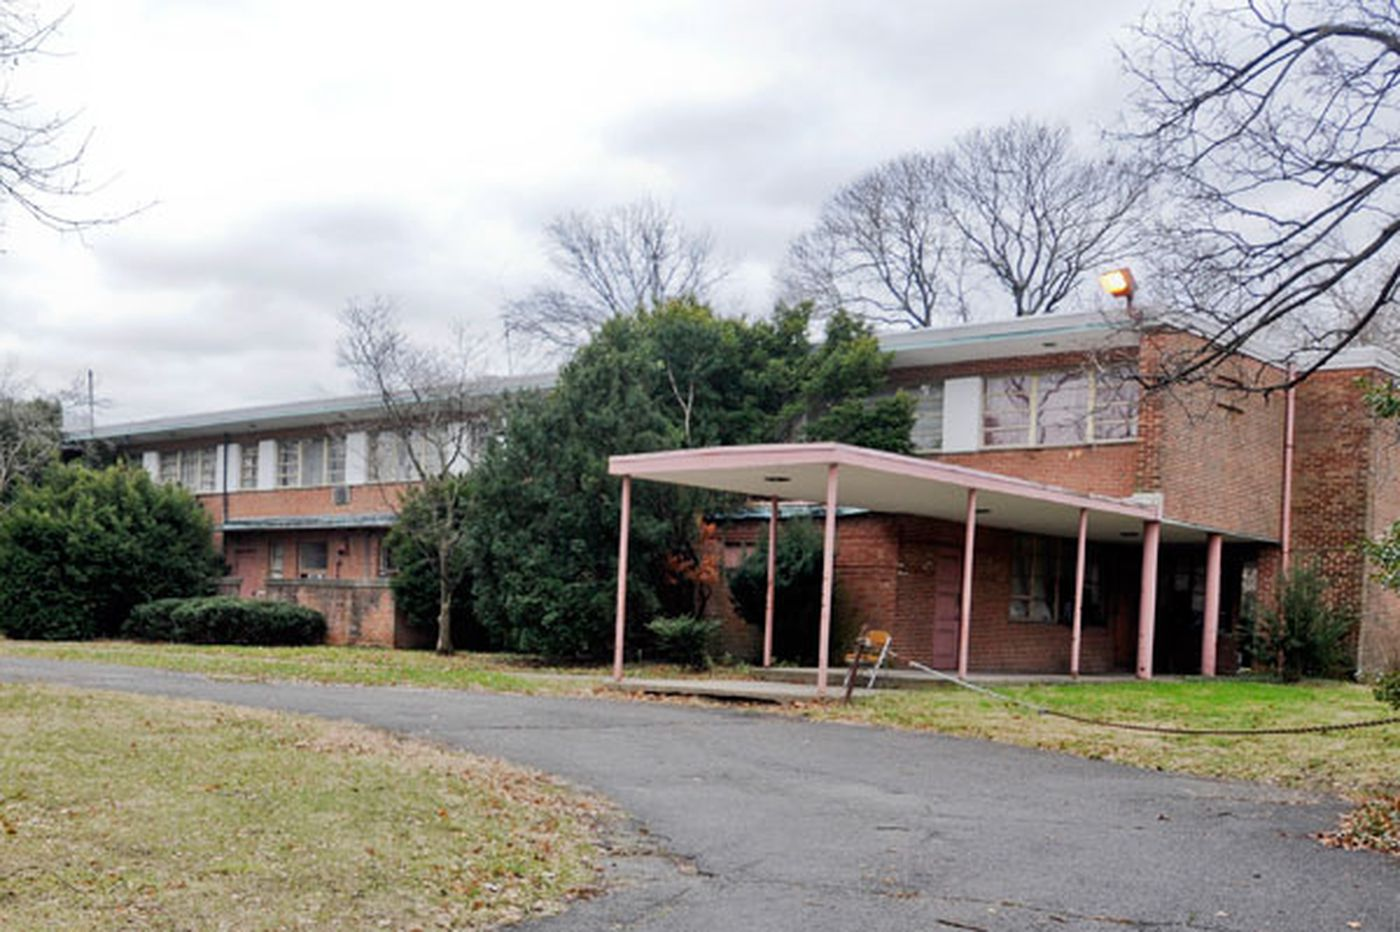 Philadelphia property with a past goes on auction block